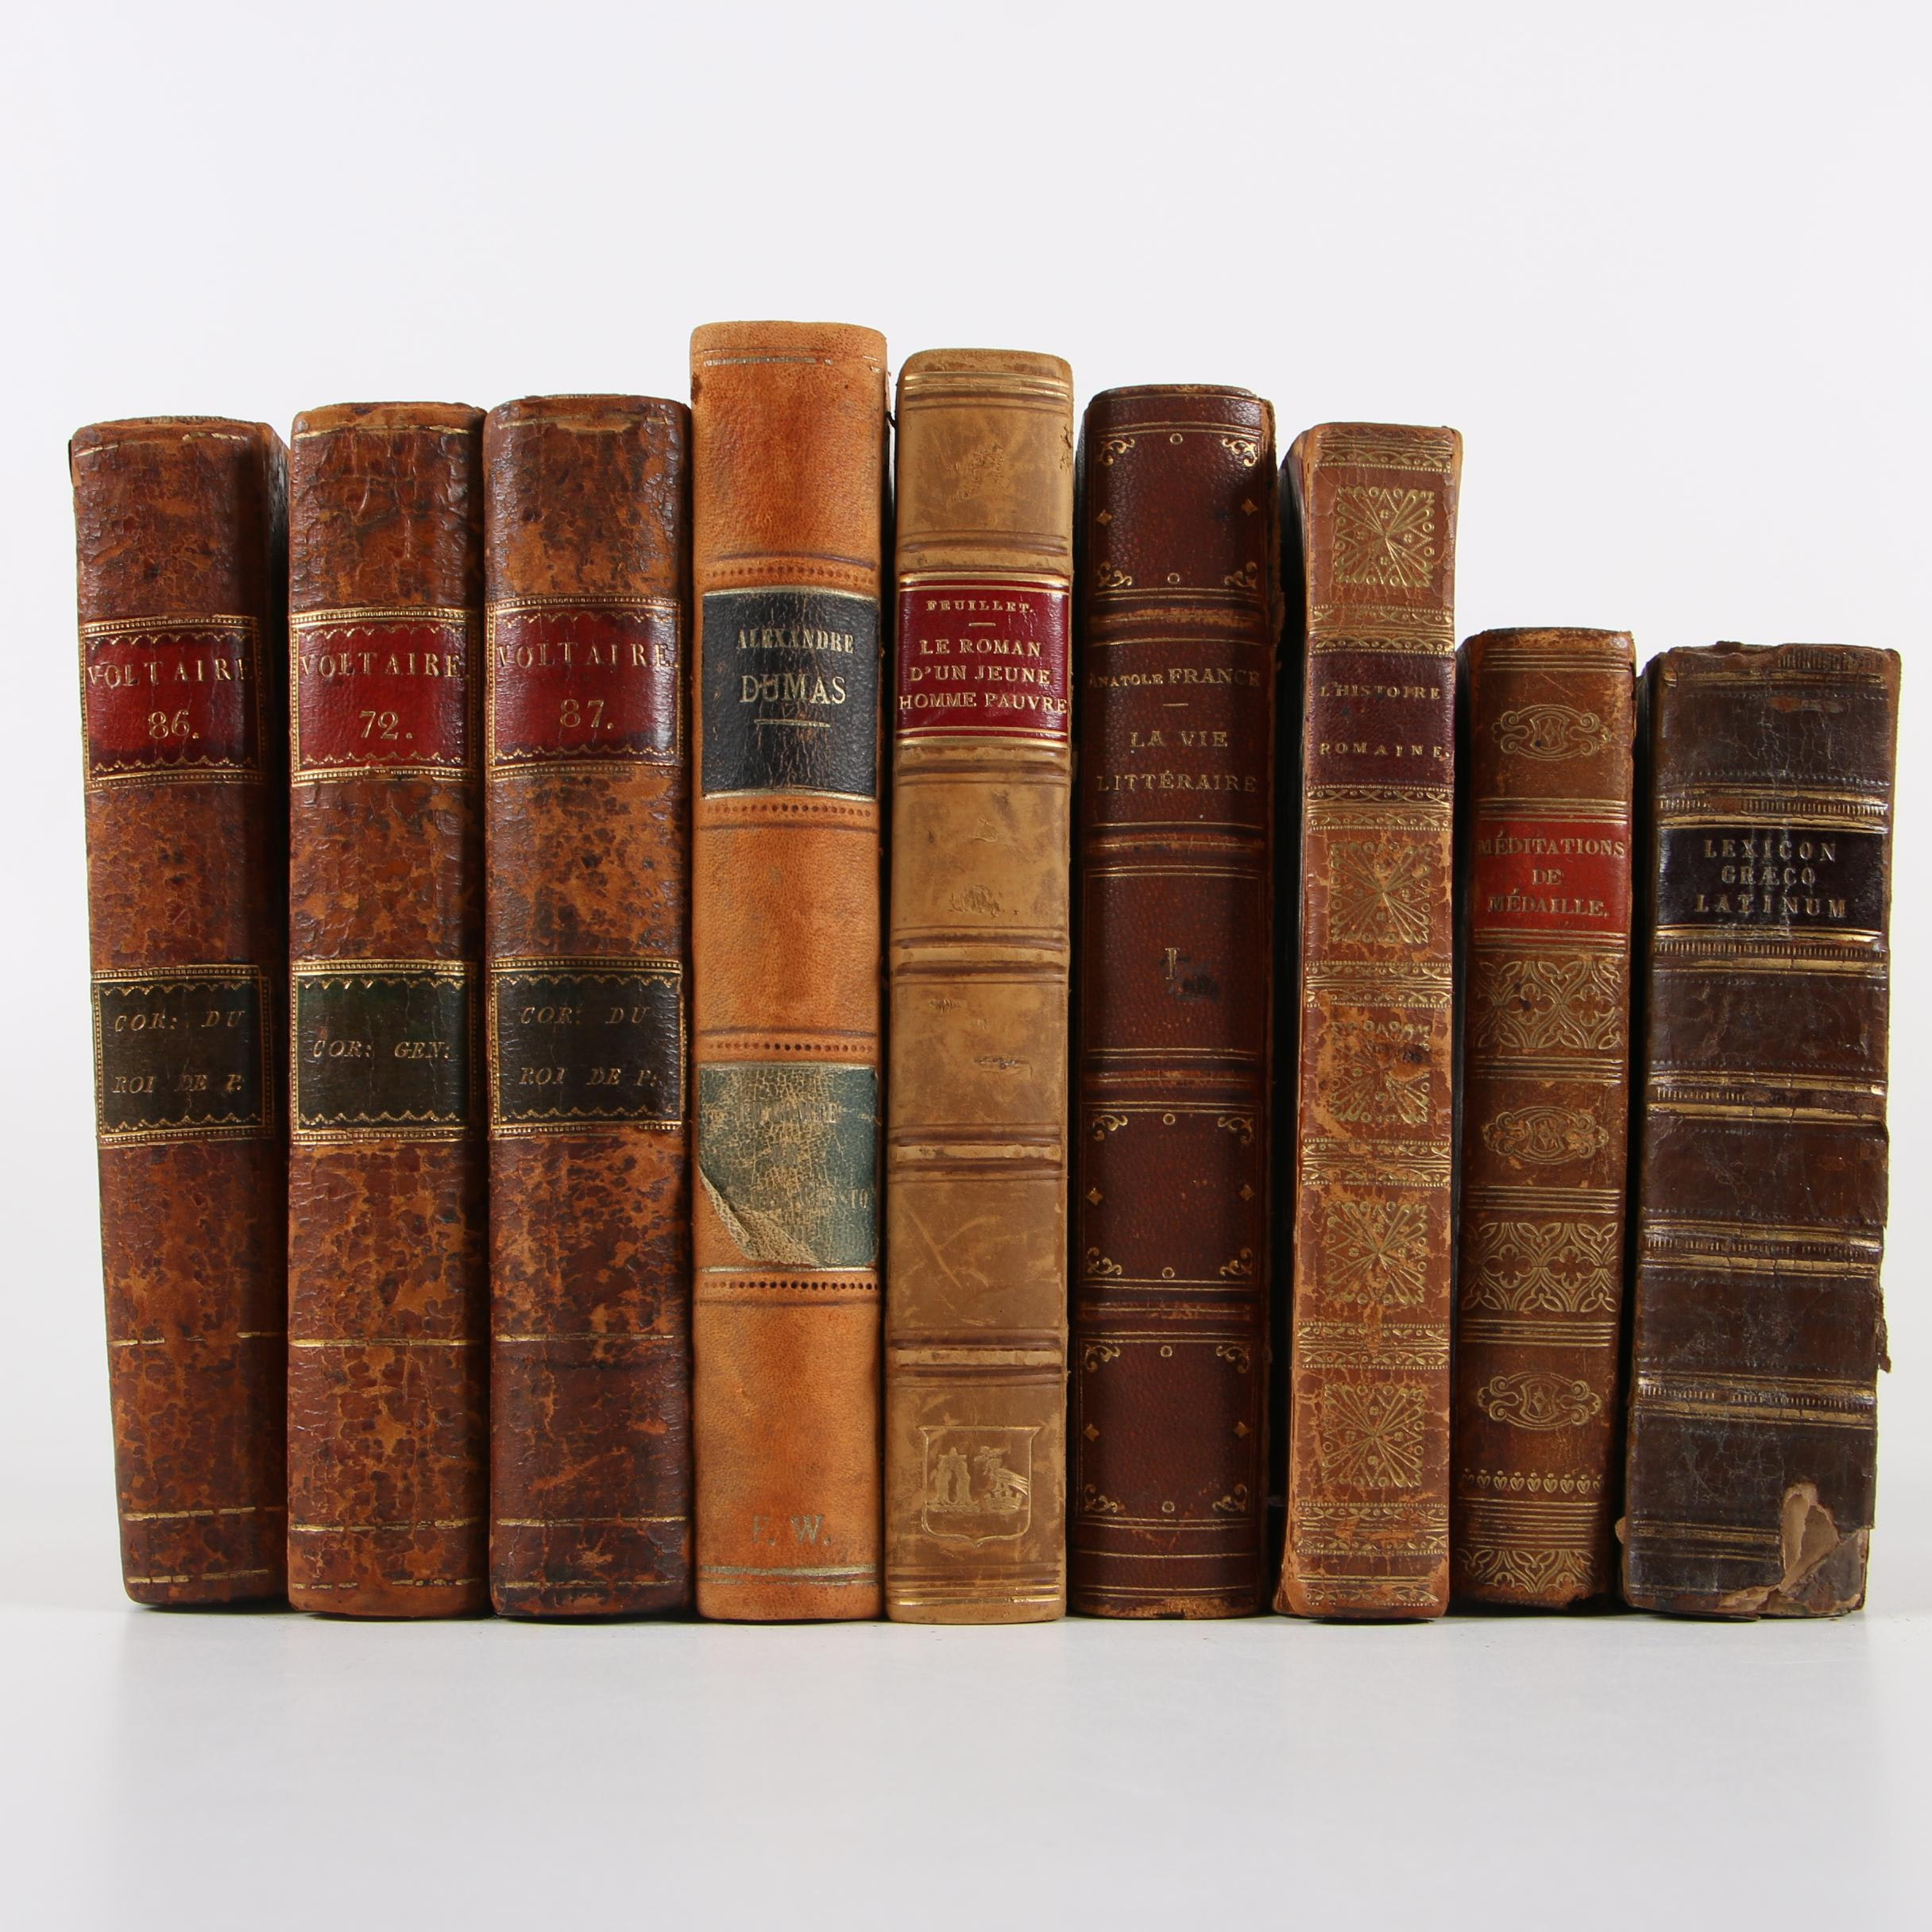 Antiquarian French-Language Books featuring Voltaire and Dumas